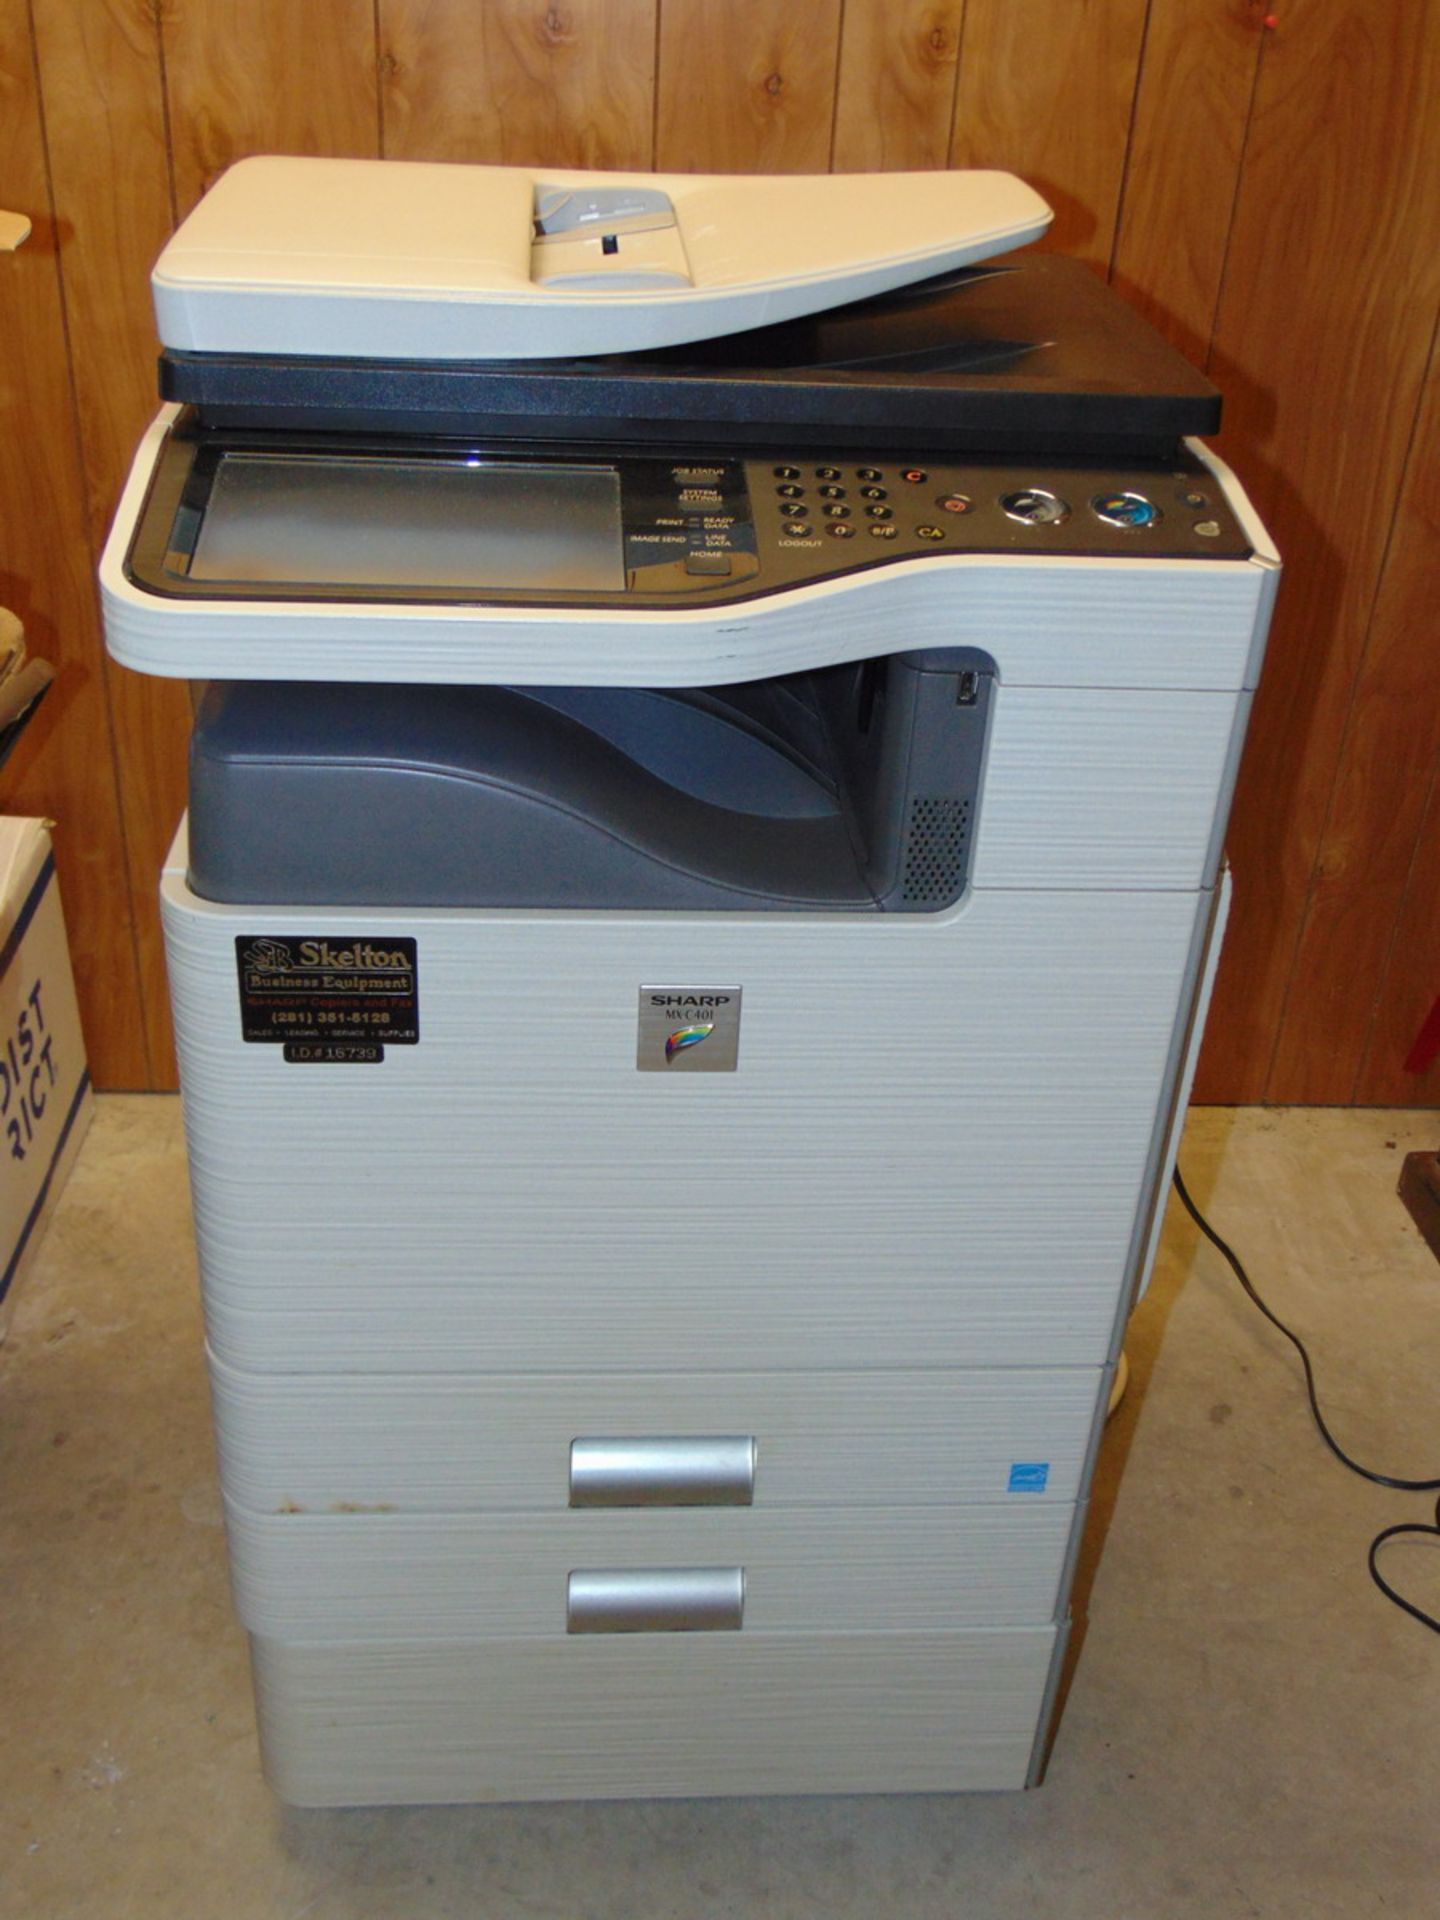 Lot 146 - Sharp MX-C401 Multifunction Color Printer / Copier / Scanner